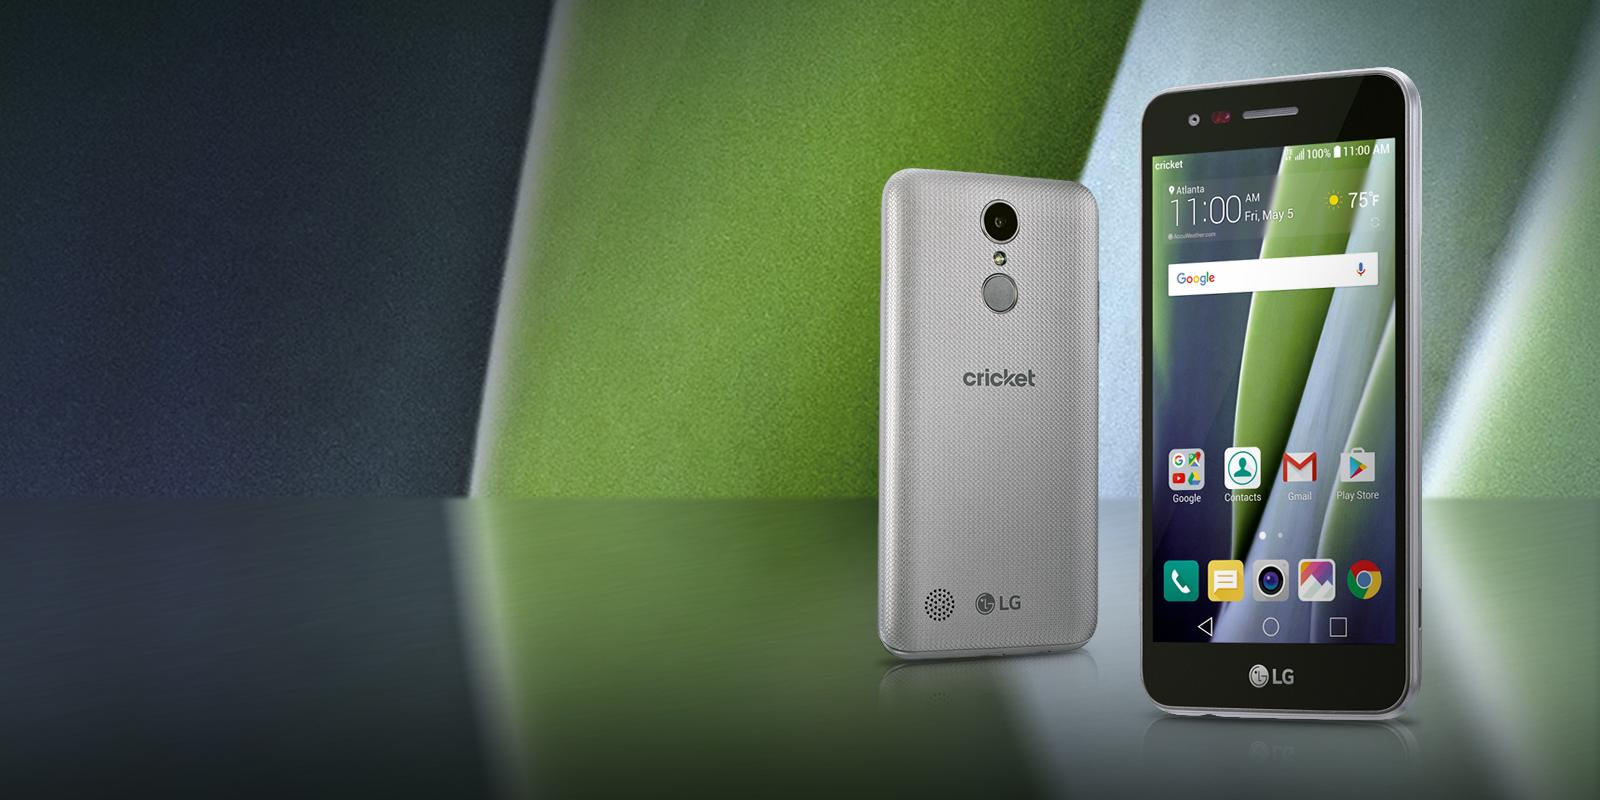 Cricket Phones by LG: View LG Cricket Wireless Phones   LG USA